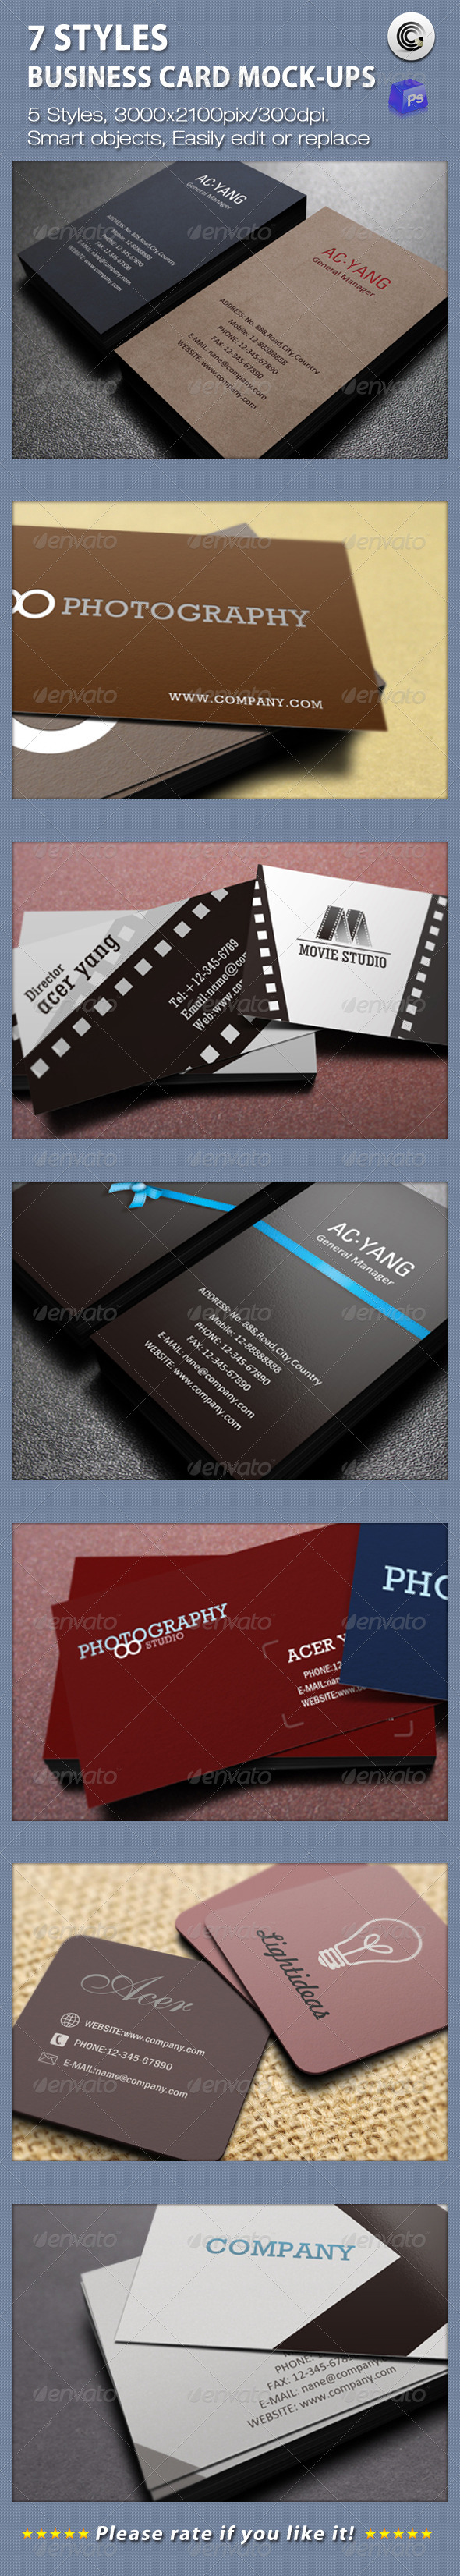 7 Styles Business Card Mock-ups - Business Cards Print